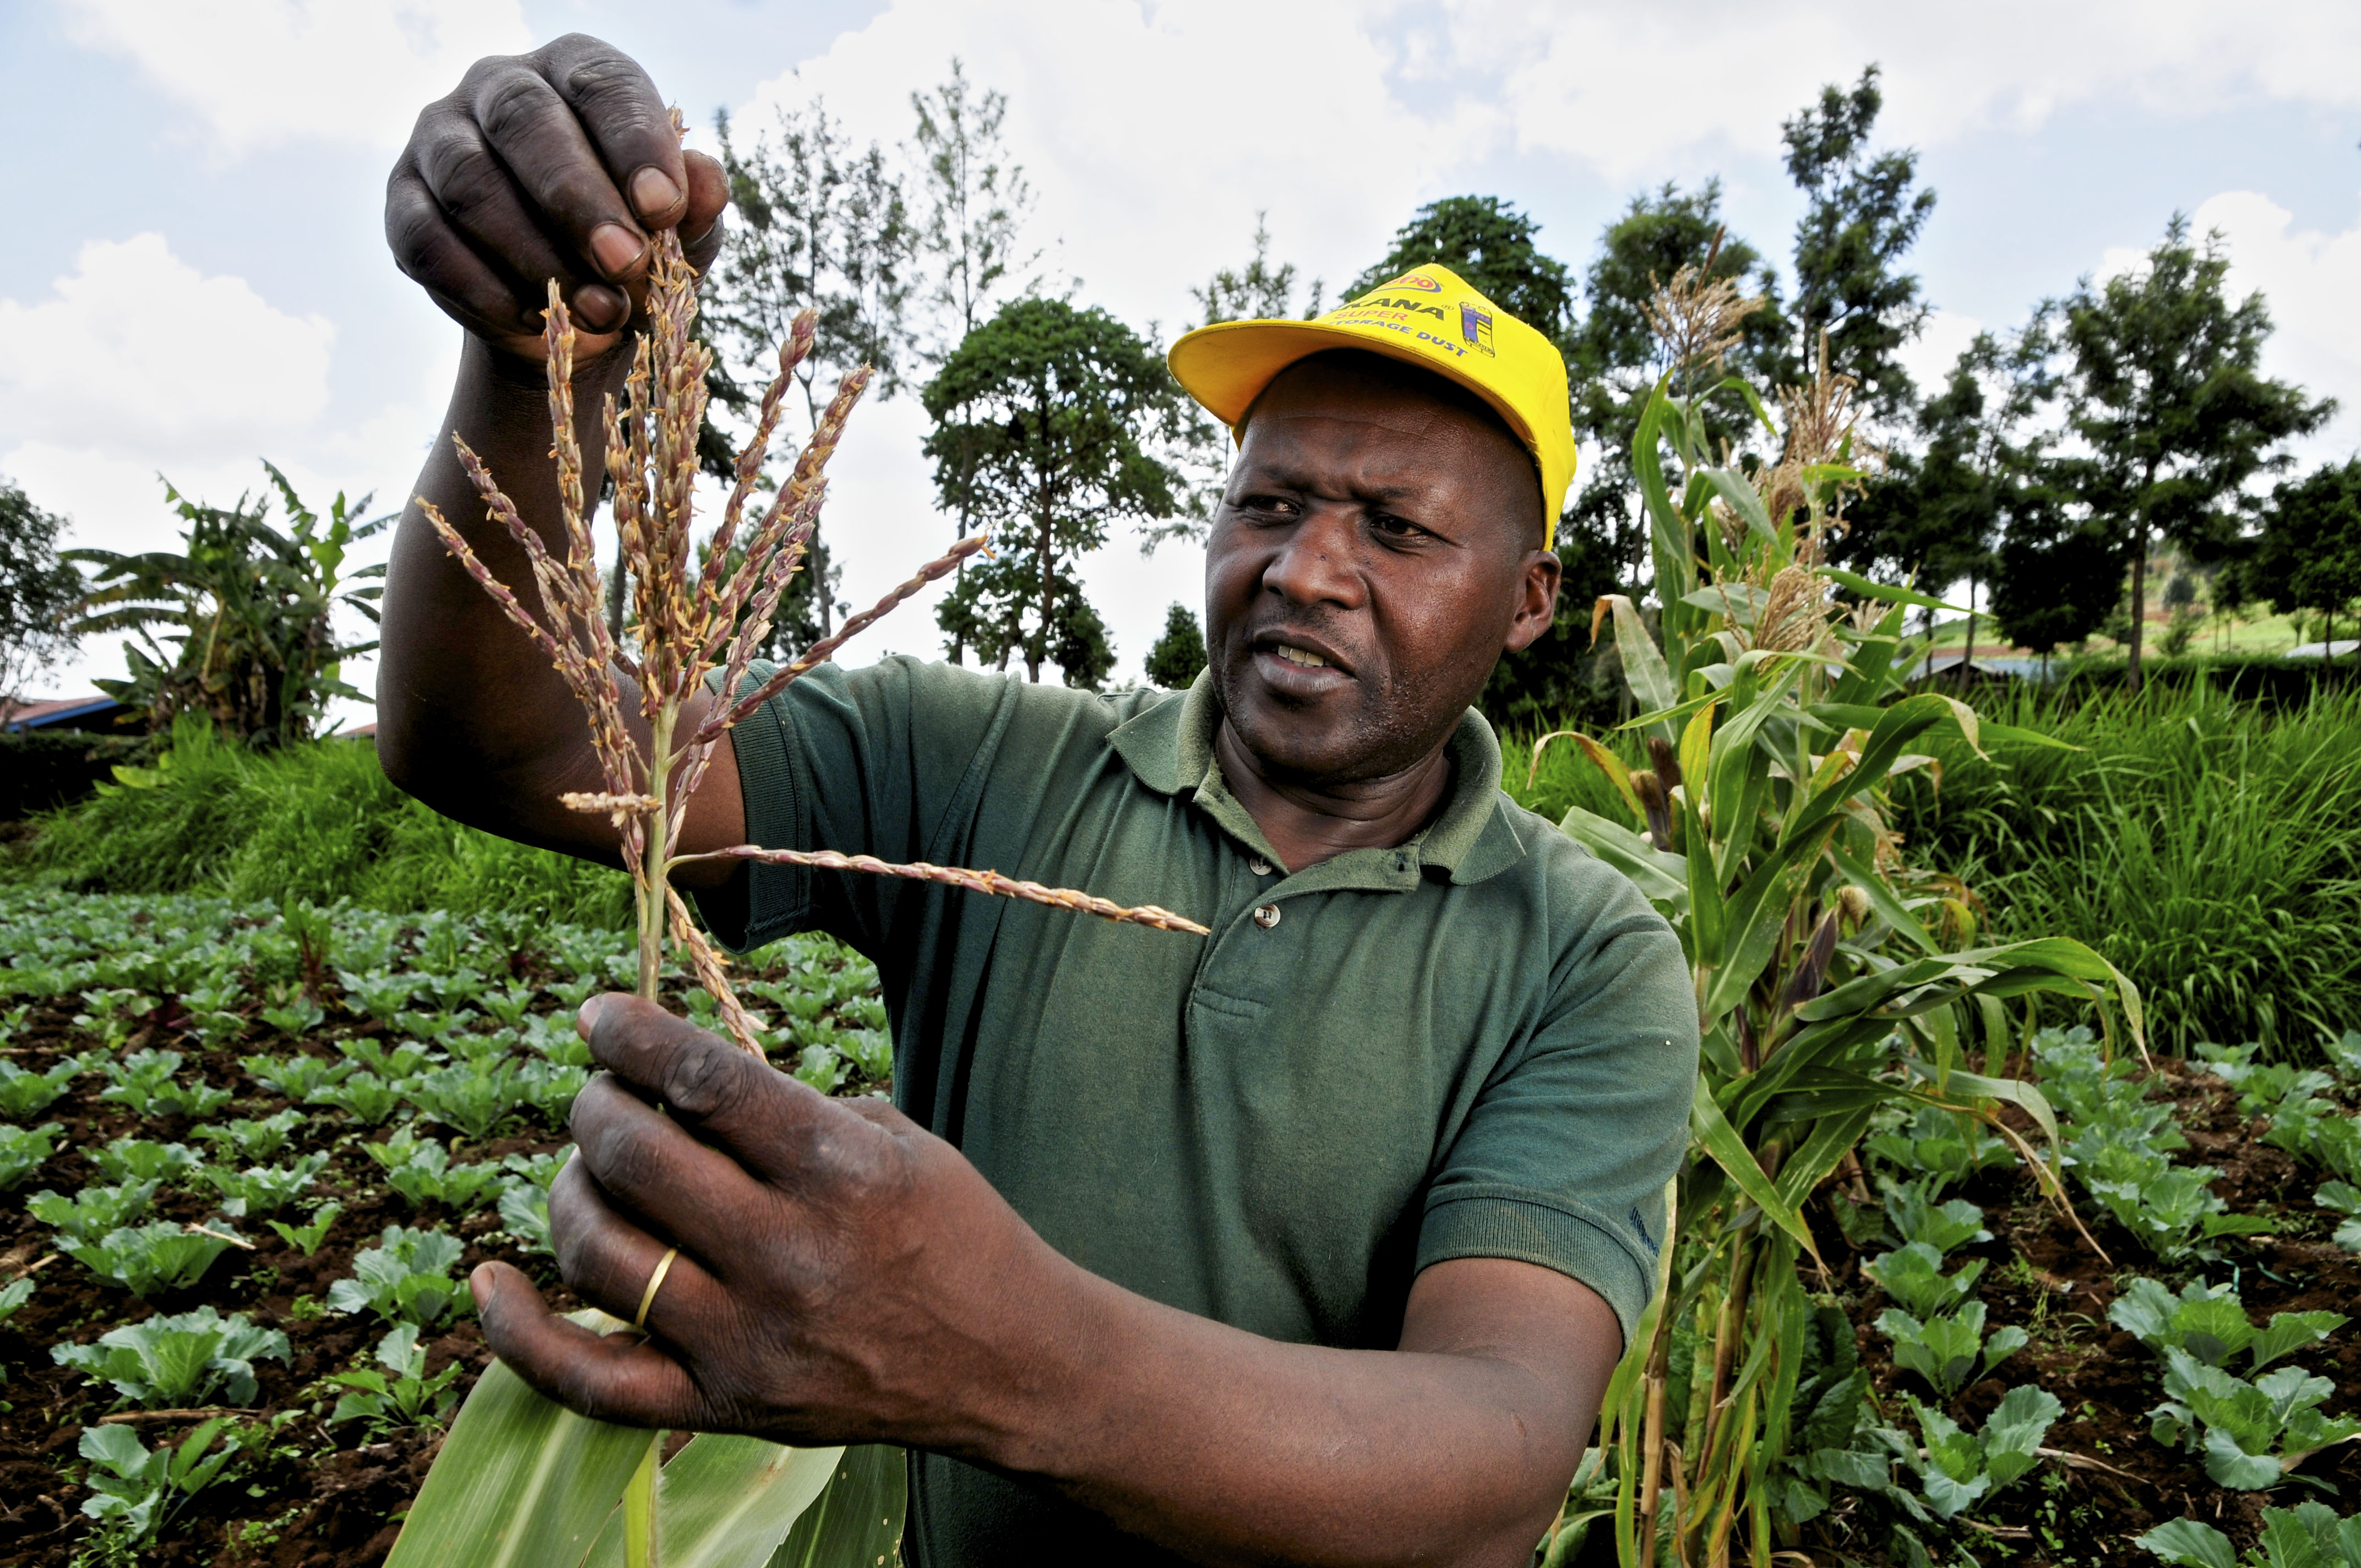 The decision could determine whether Kenya's farmers are ultimately able to access and plant improved genetically modified (GM) seeds. (PHOTO/FILE)